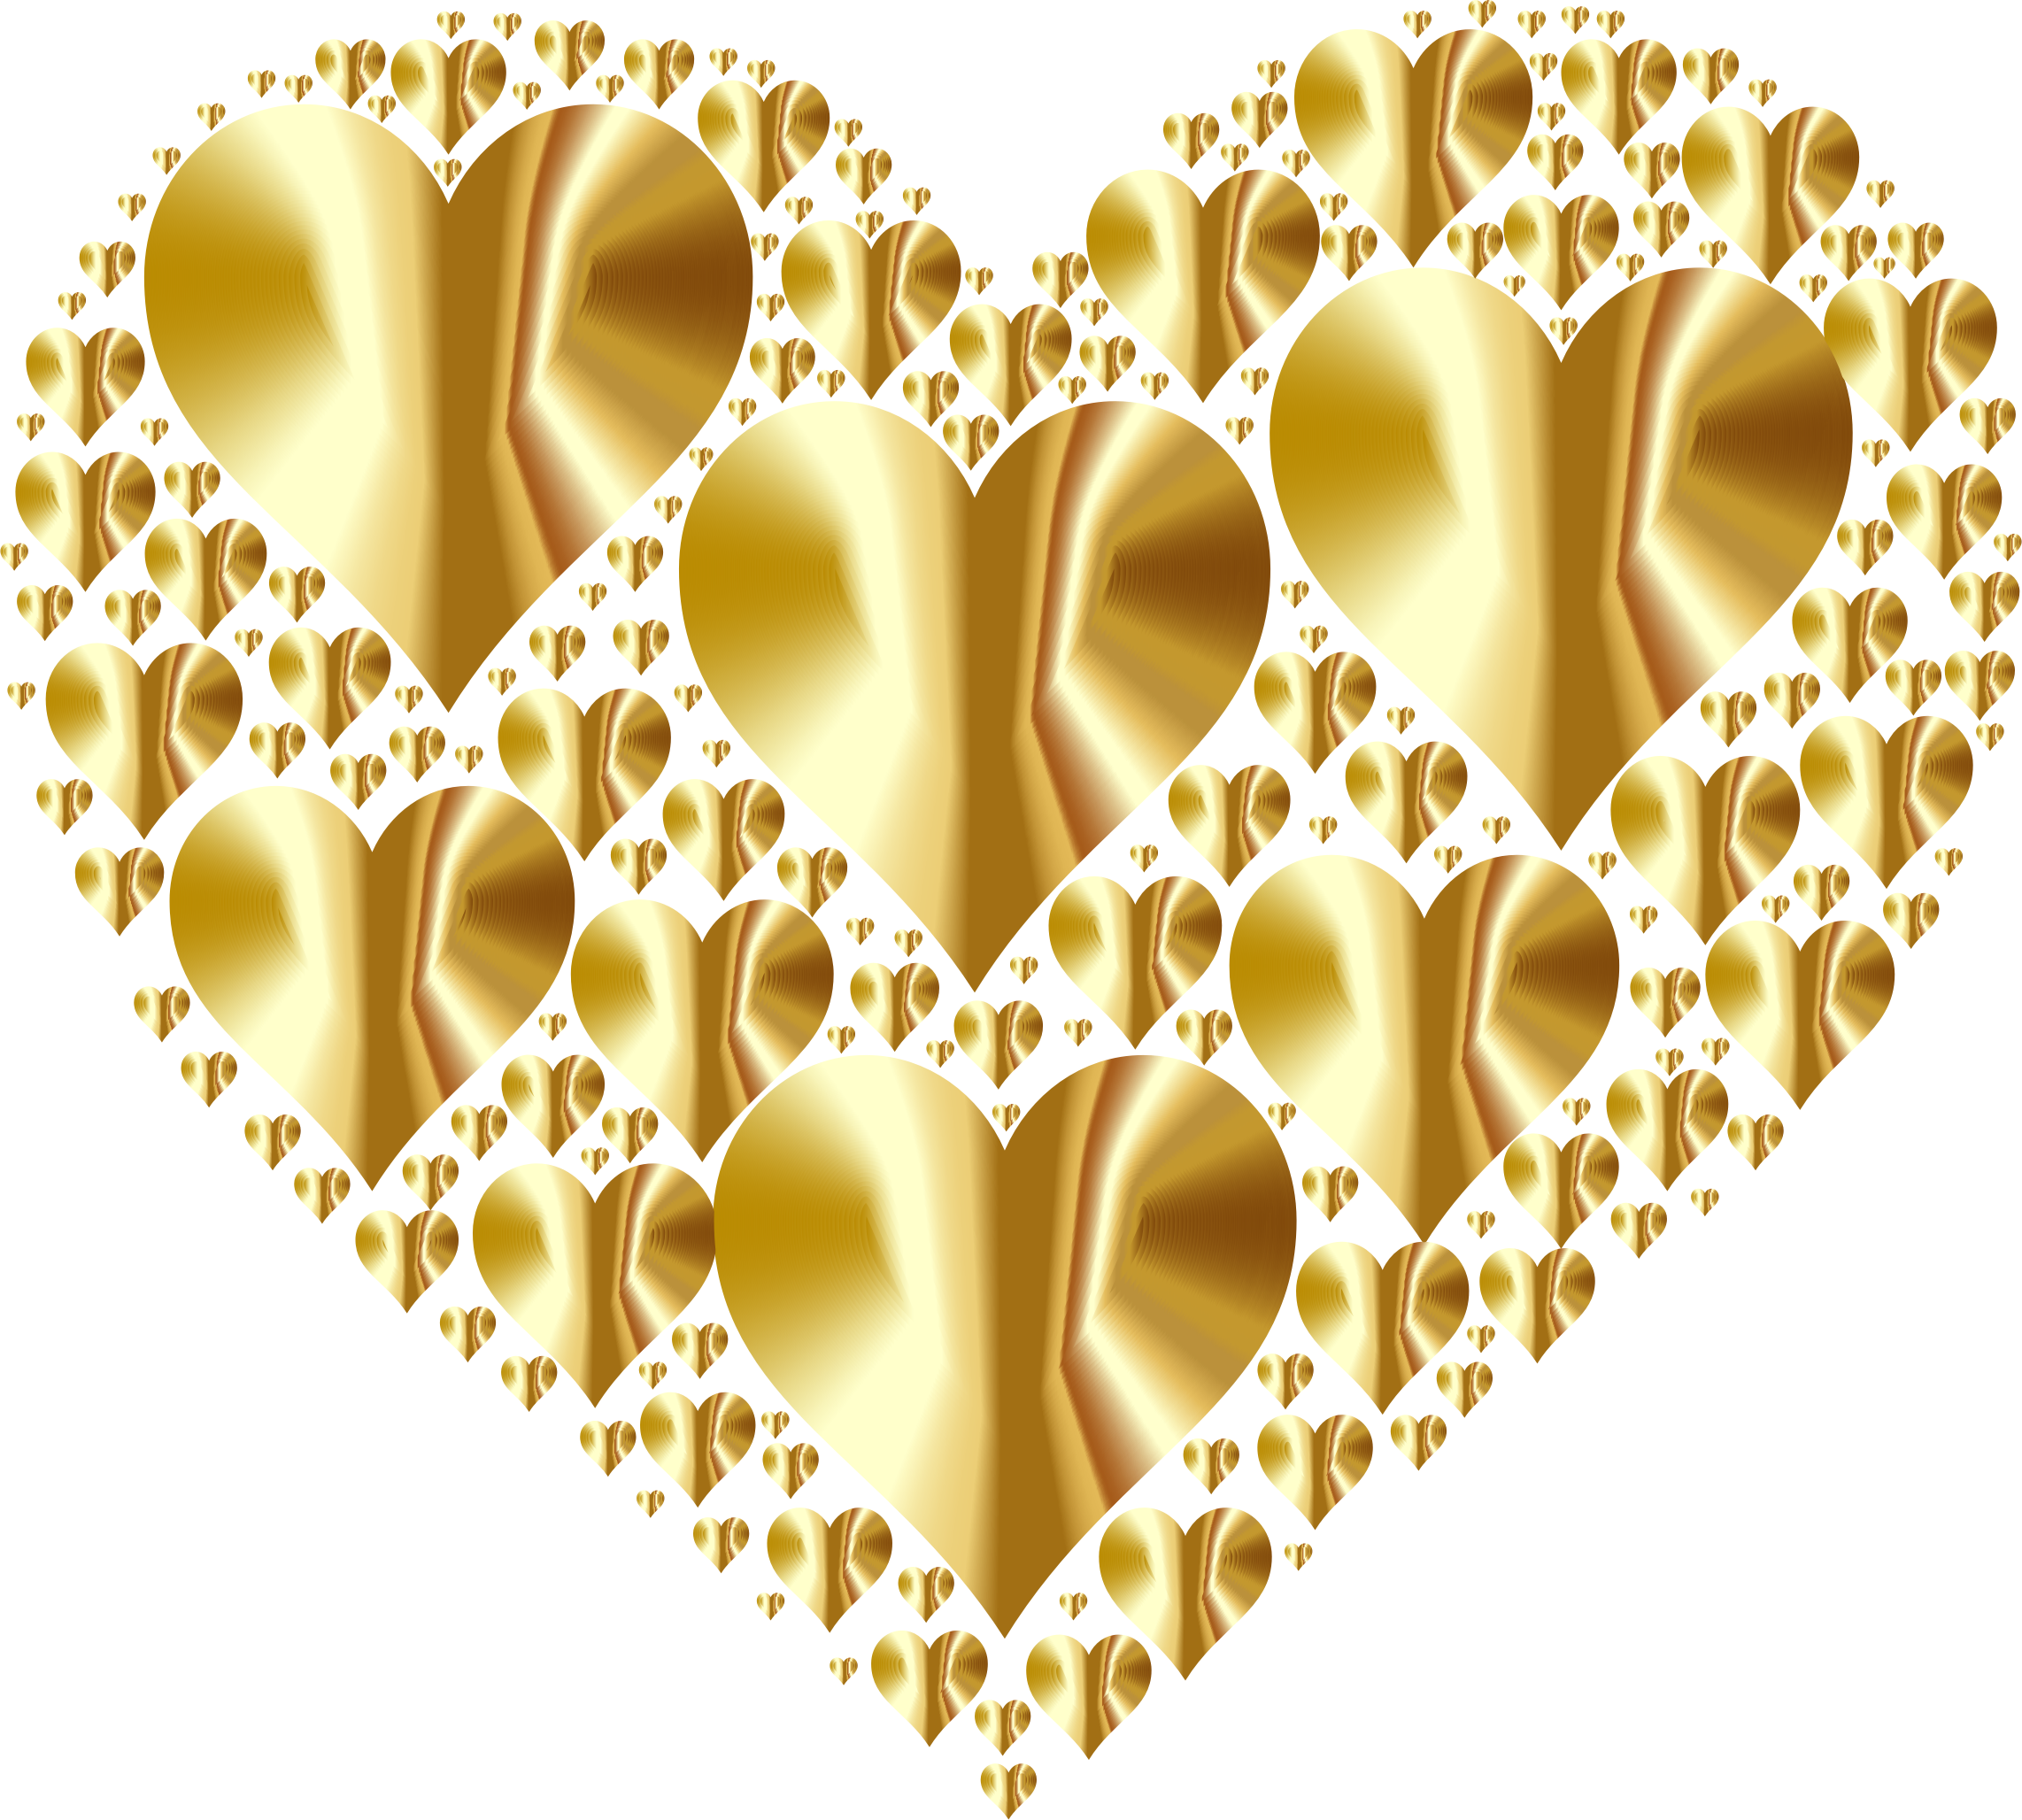 Gold heart clipart no background clipart royalty free stock Clipart - Hearts In Heart Rejuvenated 4 No Background clipart royalty free stock